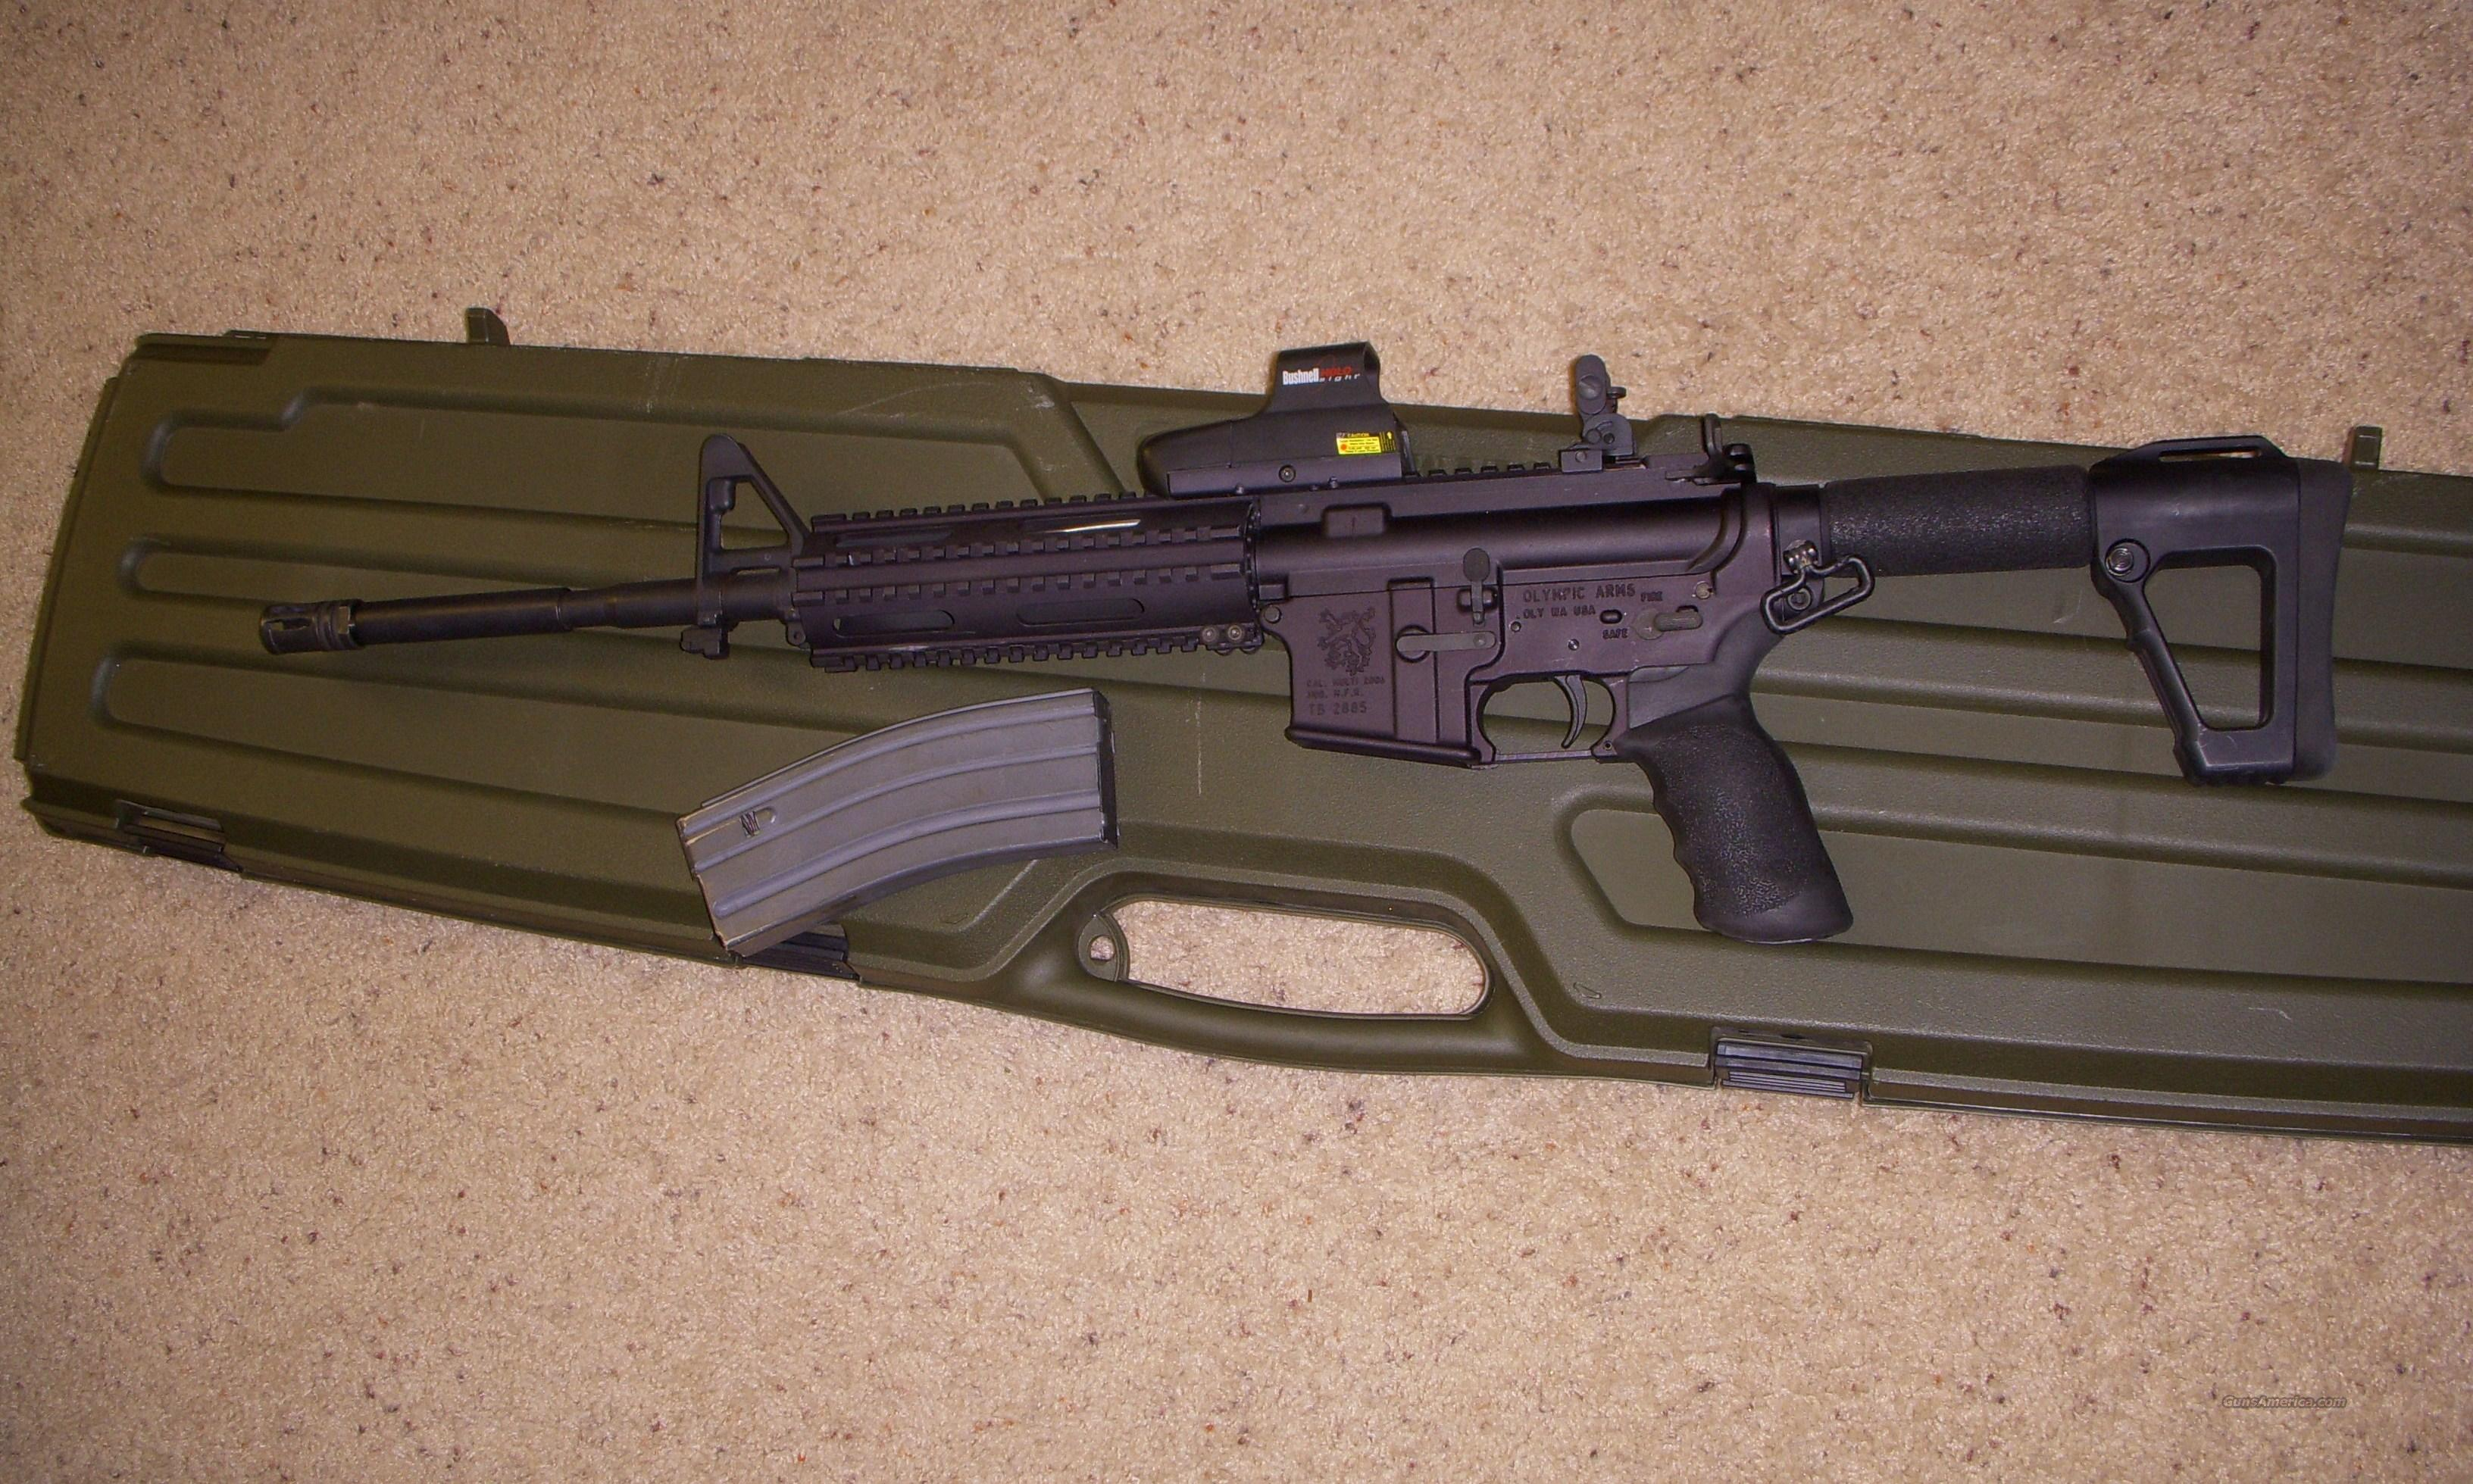 Custom Built Olympic Arms AR-15 *m4*  Guns > Rifles > AR-15 Rifles - Small Manufacturers > Complete Rifle